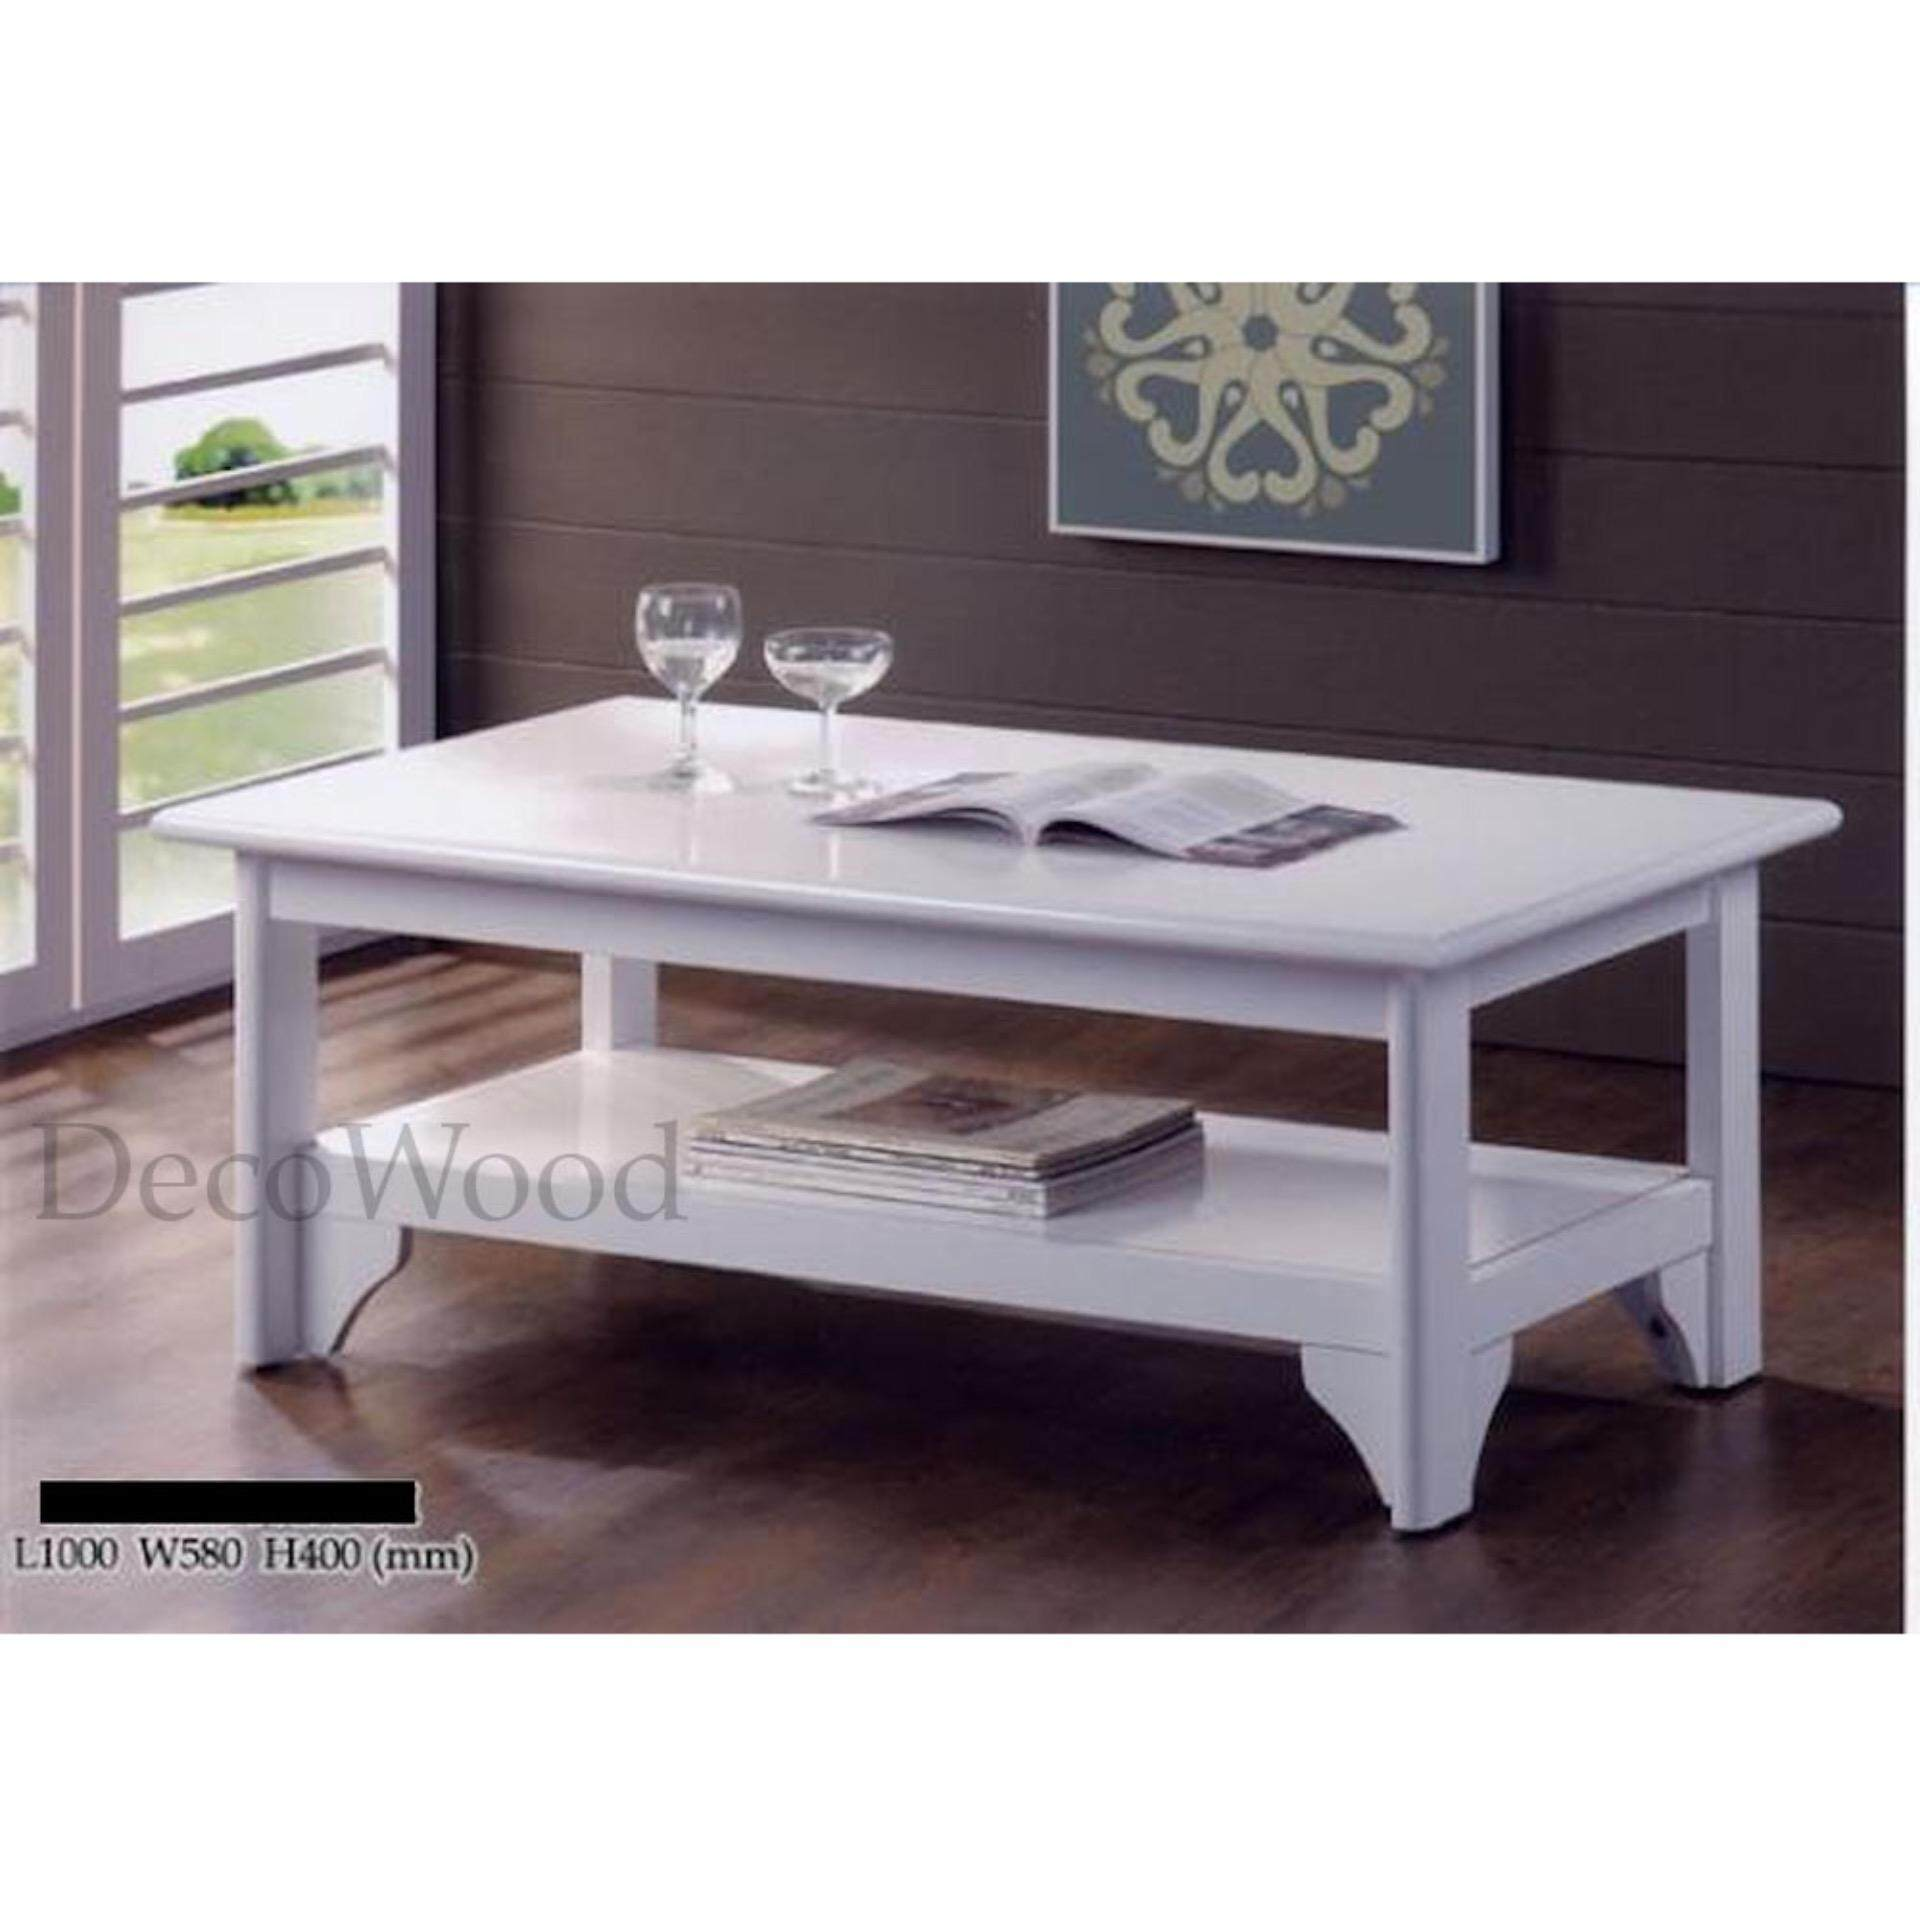 Solid Wood Strong Coffee Table (White Color) L1000MM X W580MM X H400MM